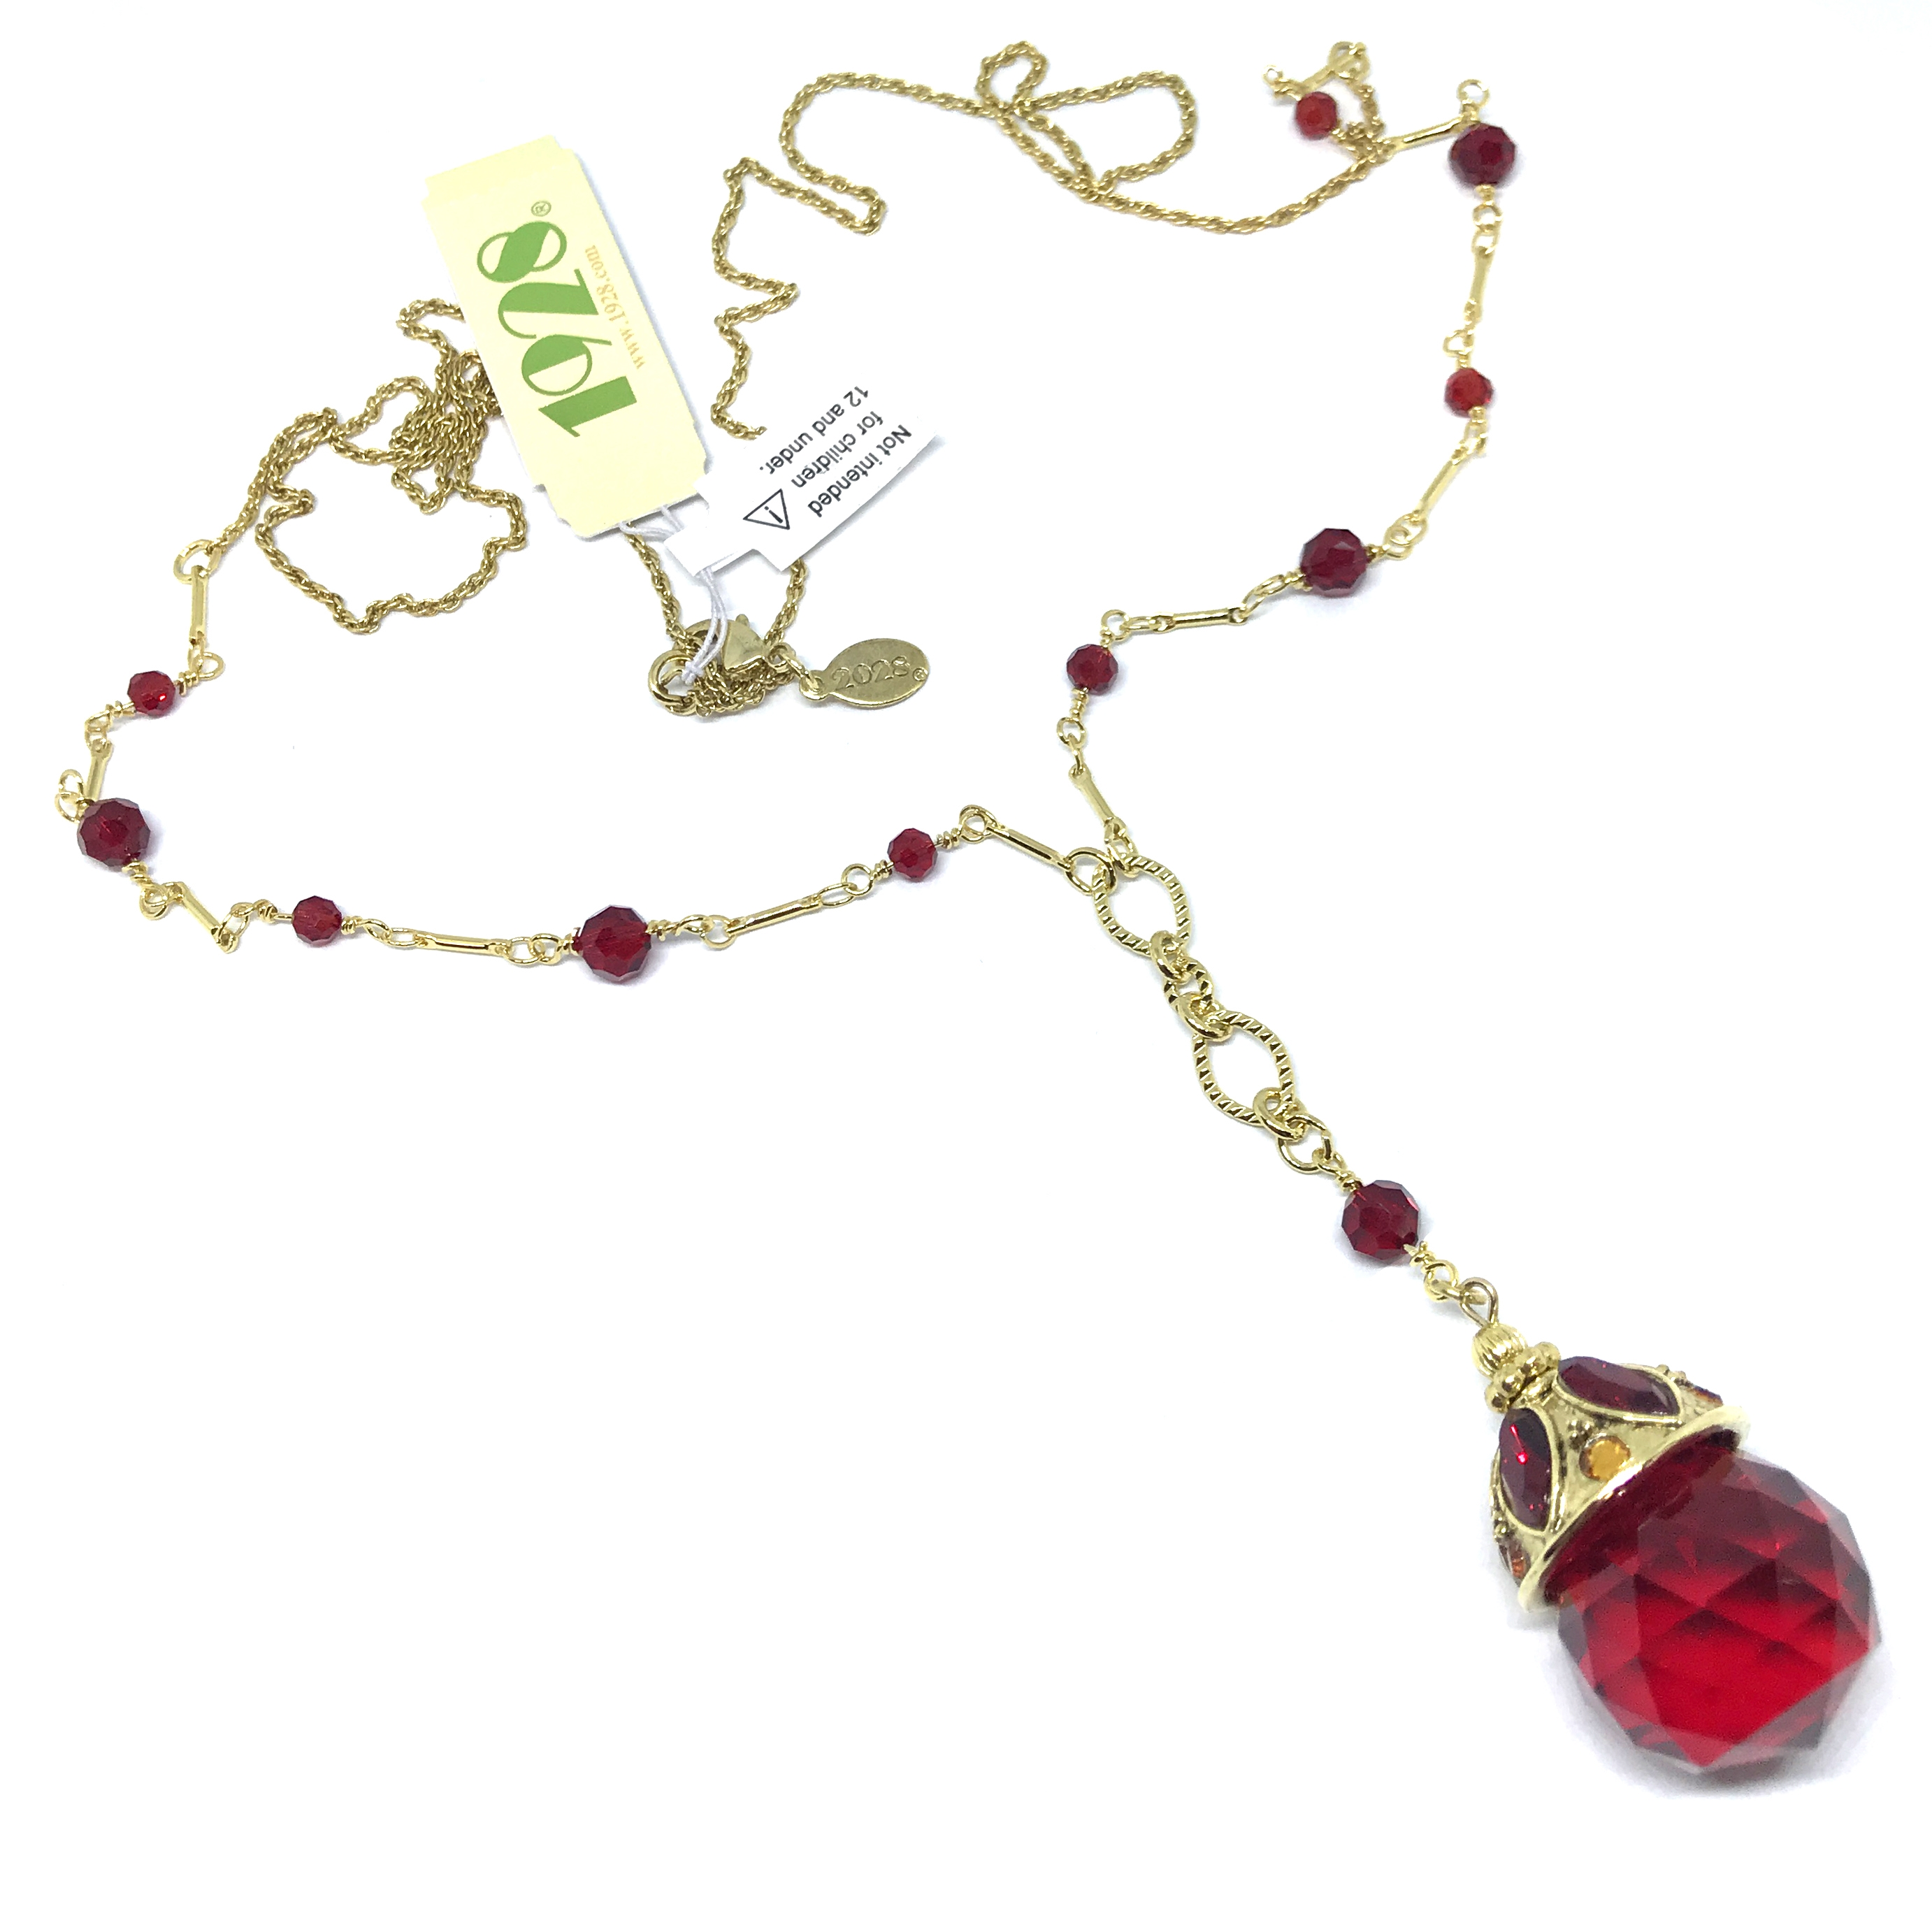 1928 Jewelry Company, red drop necklace, 14K gold dipped, Y-style, crystal, US-made, 1928 pieces, B'sue by 1928, B'sue Boutiques, 34 Inch necklace, 1928 necklace, 1928-01474